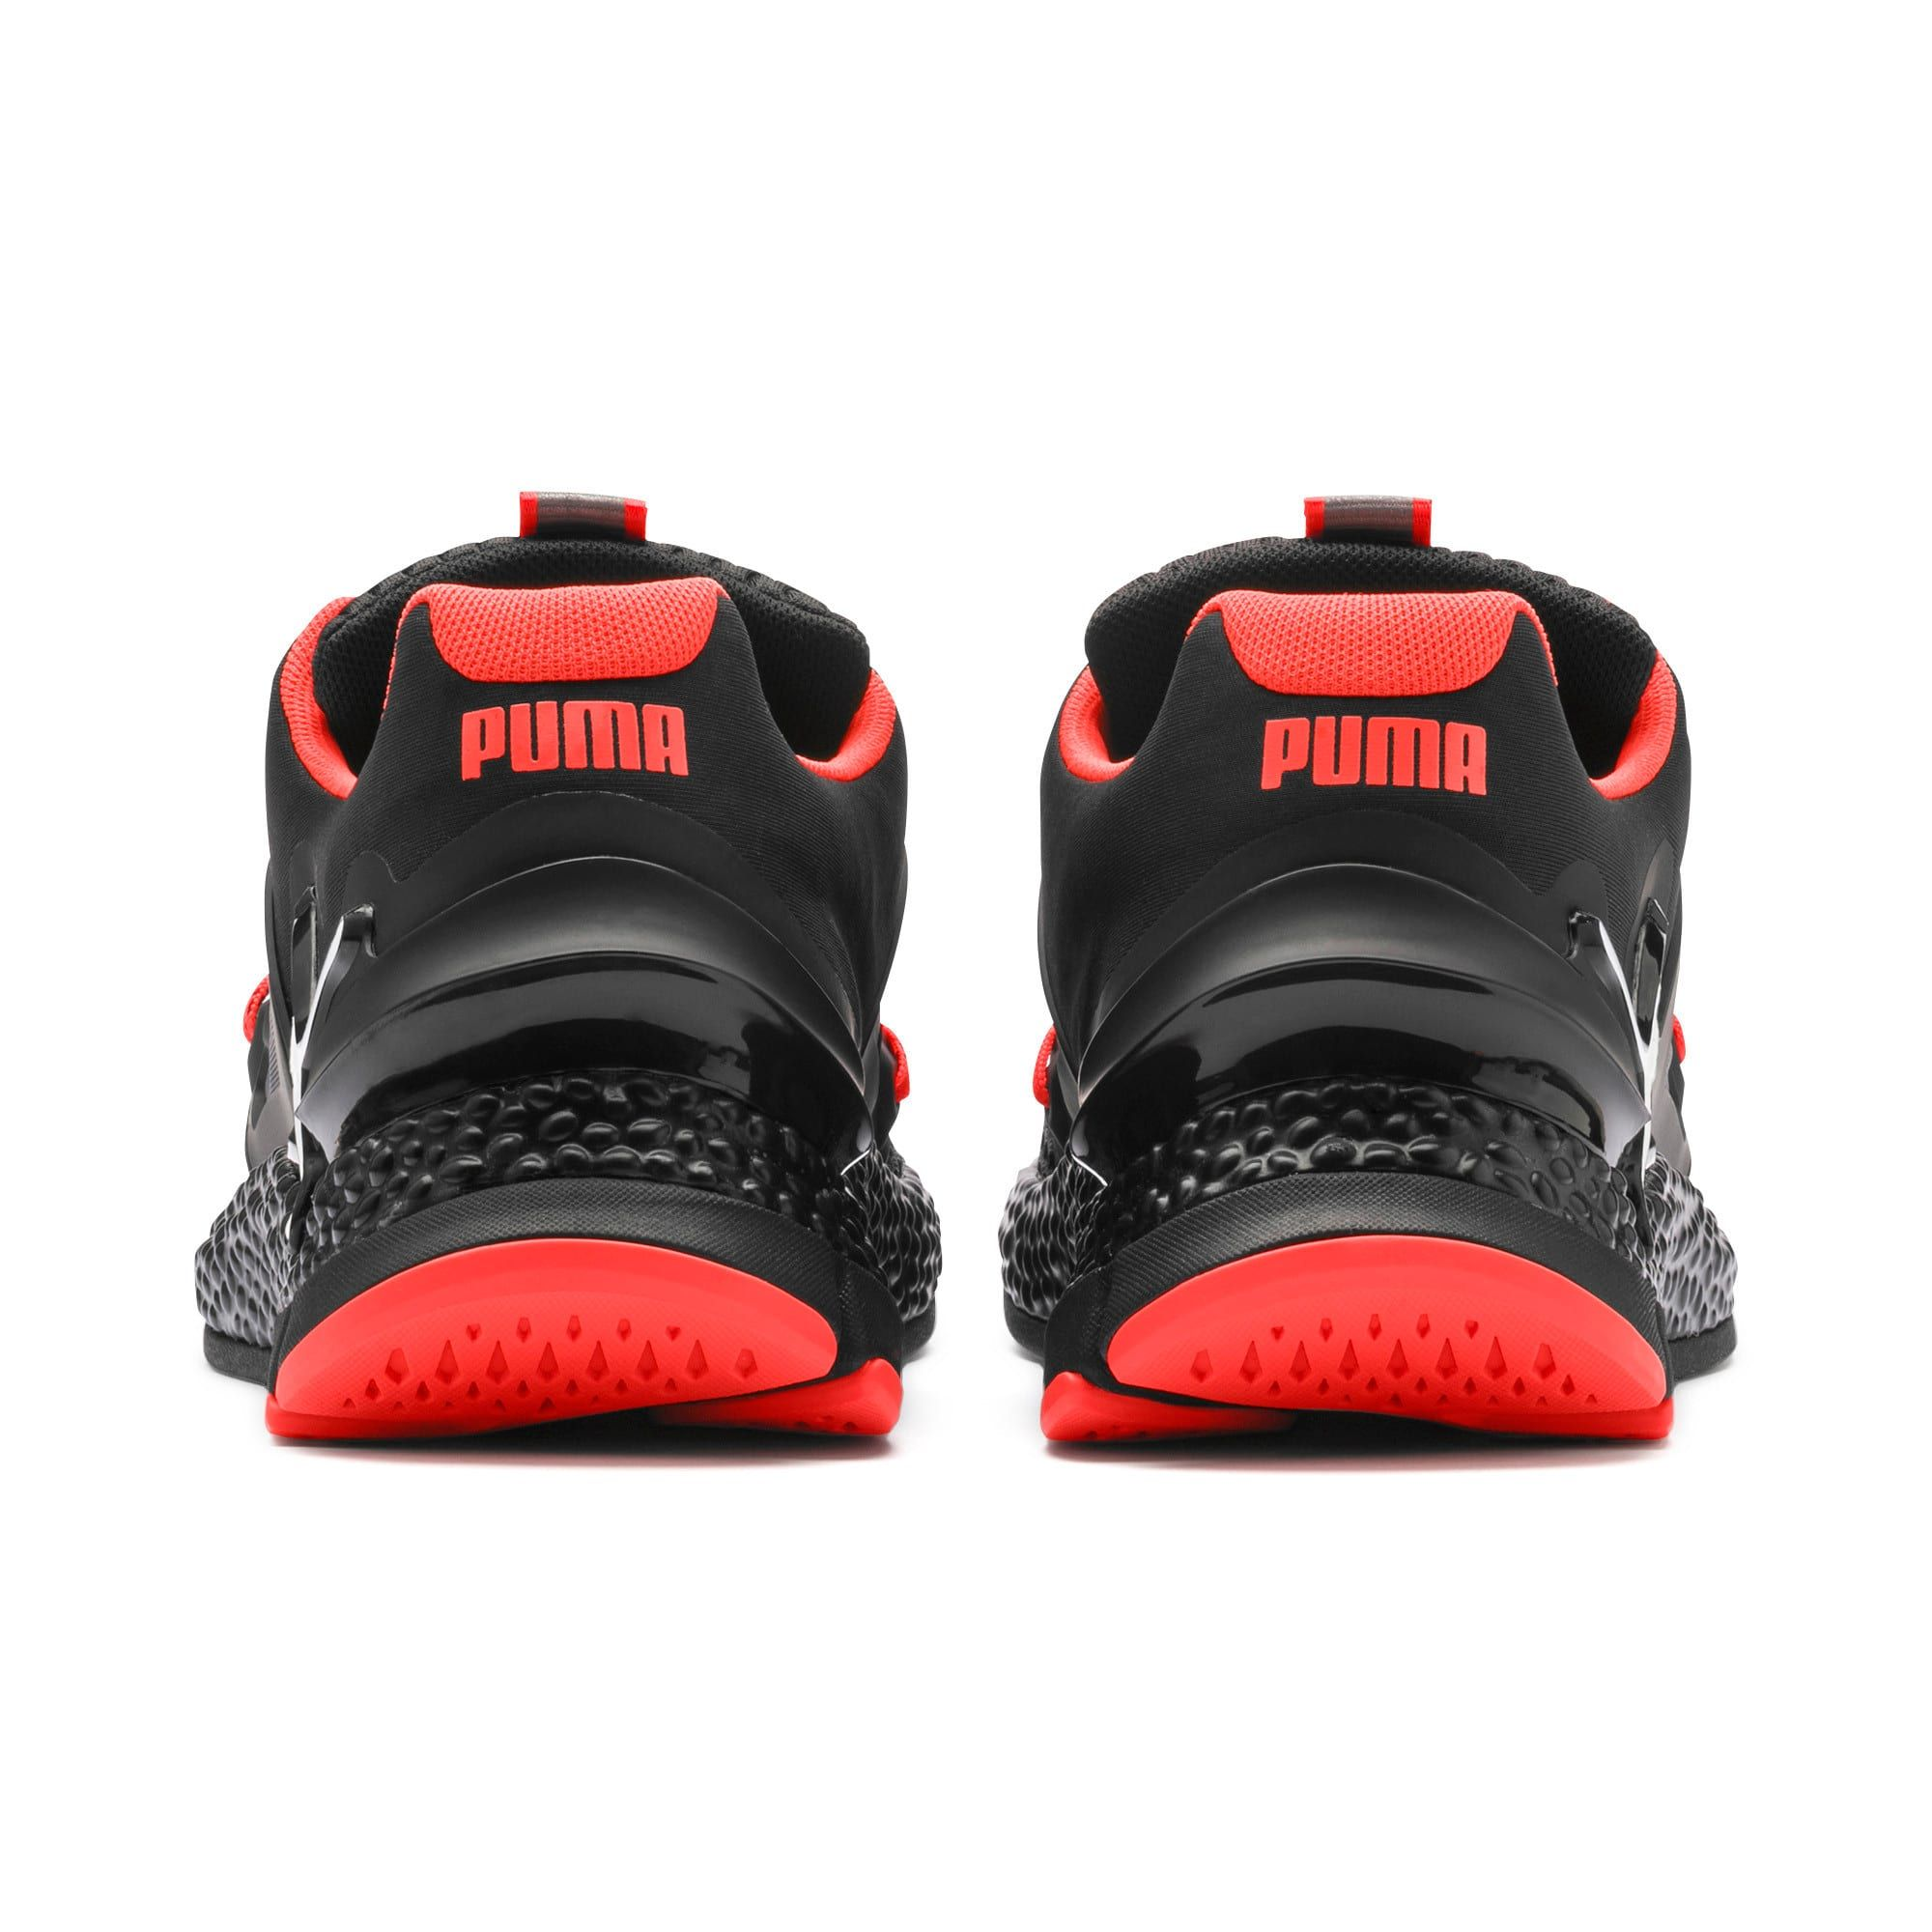 Puma HYBRID RED BLACK Multi Color Running Shoes